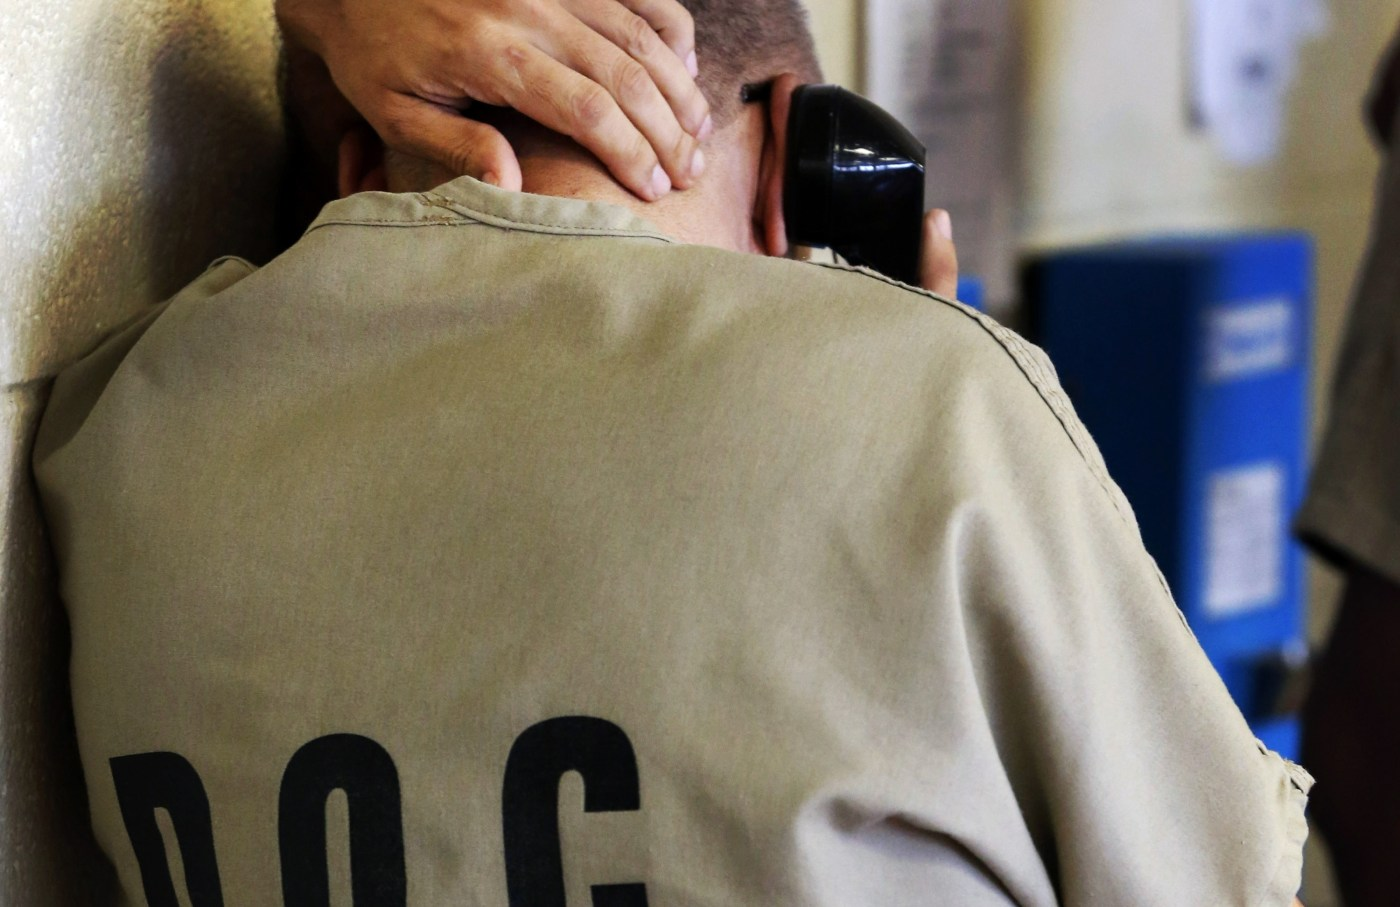 Incarcerated Person on Phone in Cook County Jail